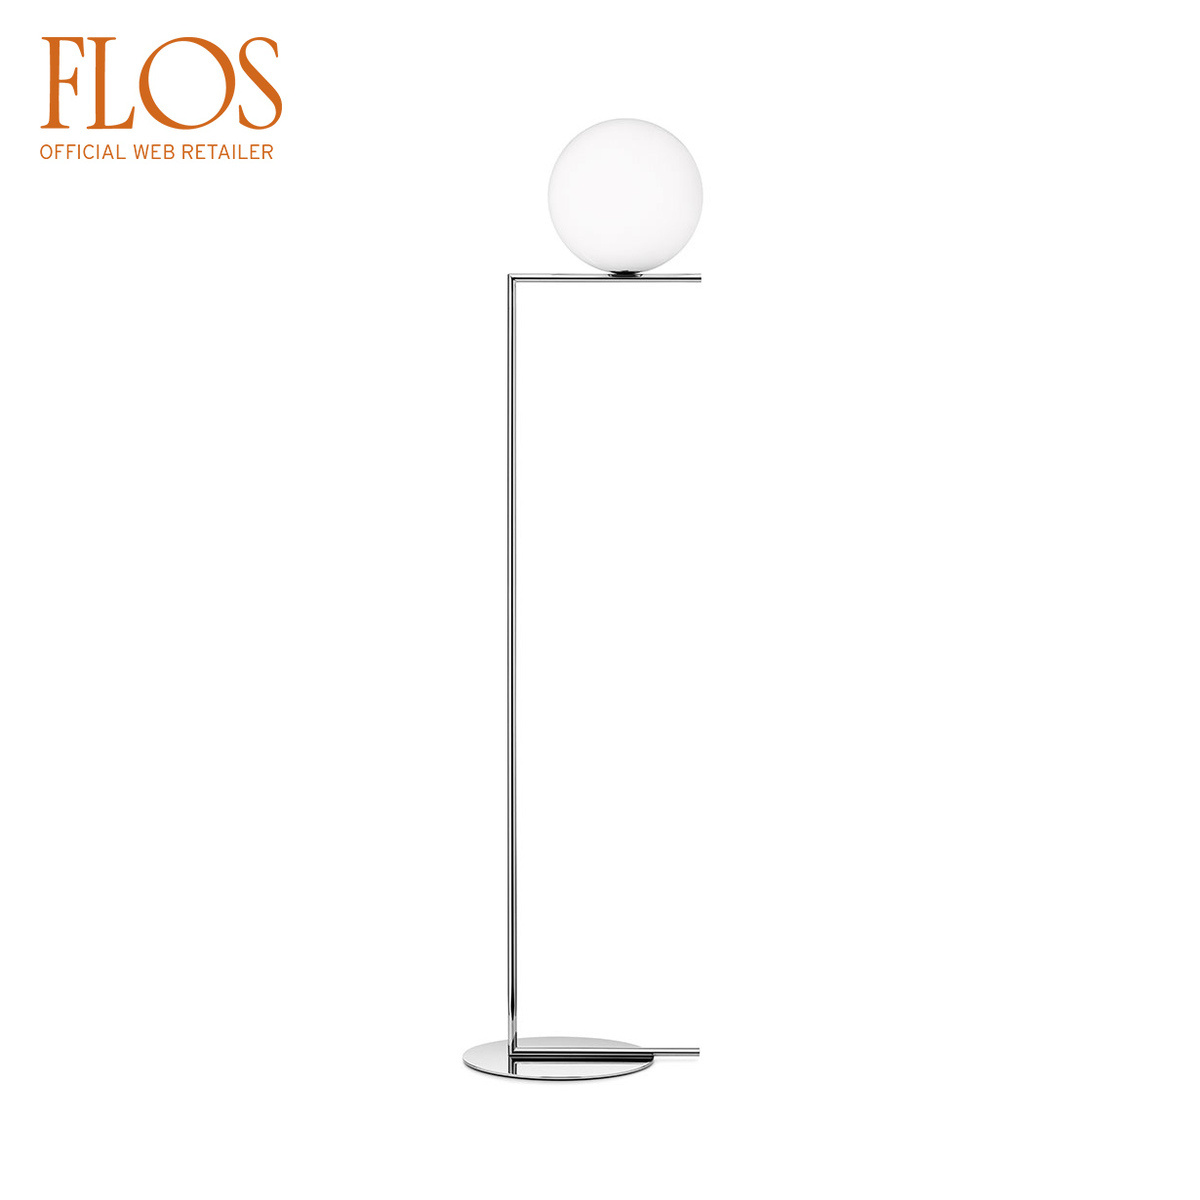 Lampada IC F2 da terra cromo by Flos | LOVEThESIGN